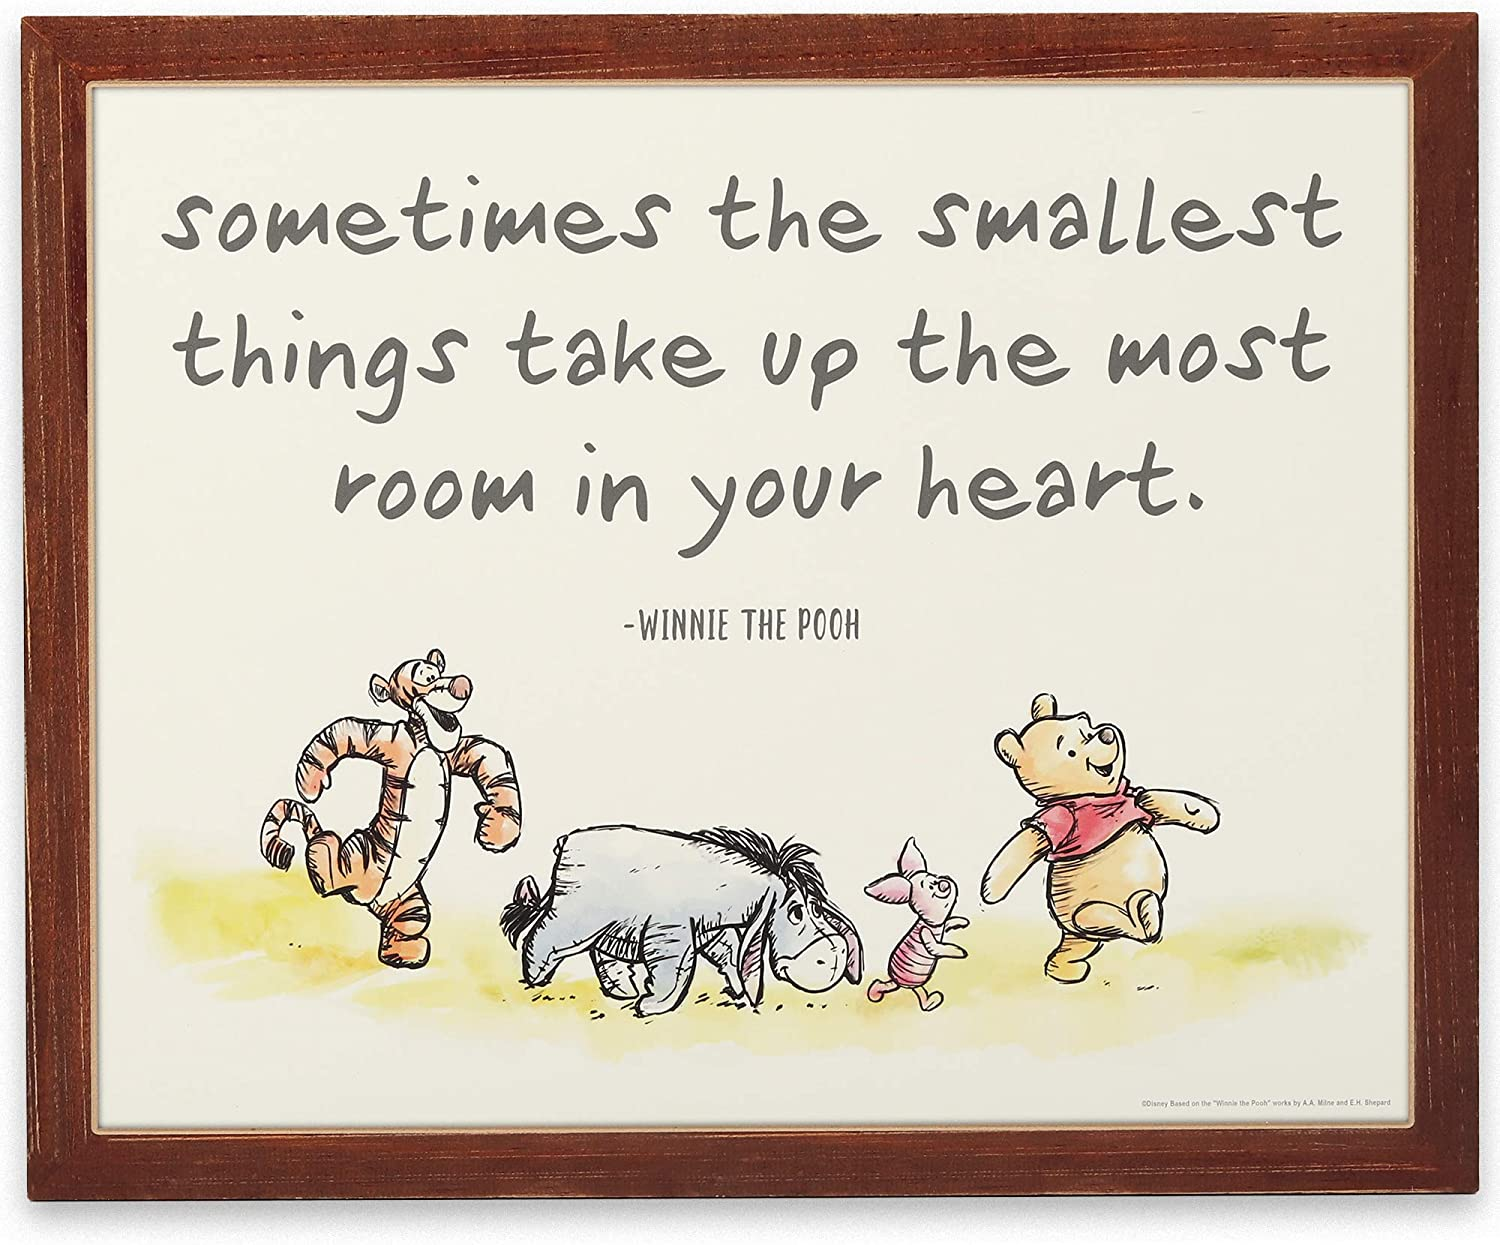 Open Road Brands Disney Winnie The Pooh Room in Your Heart Nostalgic Wood Wall Décor for Nursery, Bedroom or Play Room